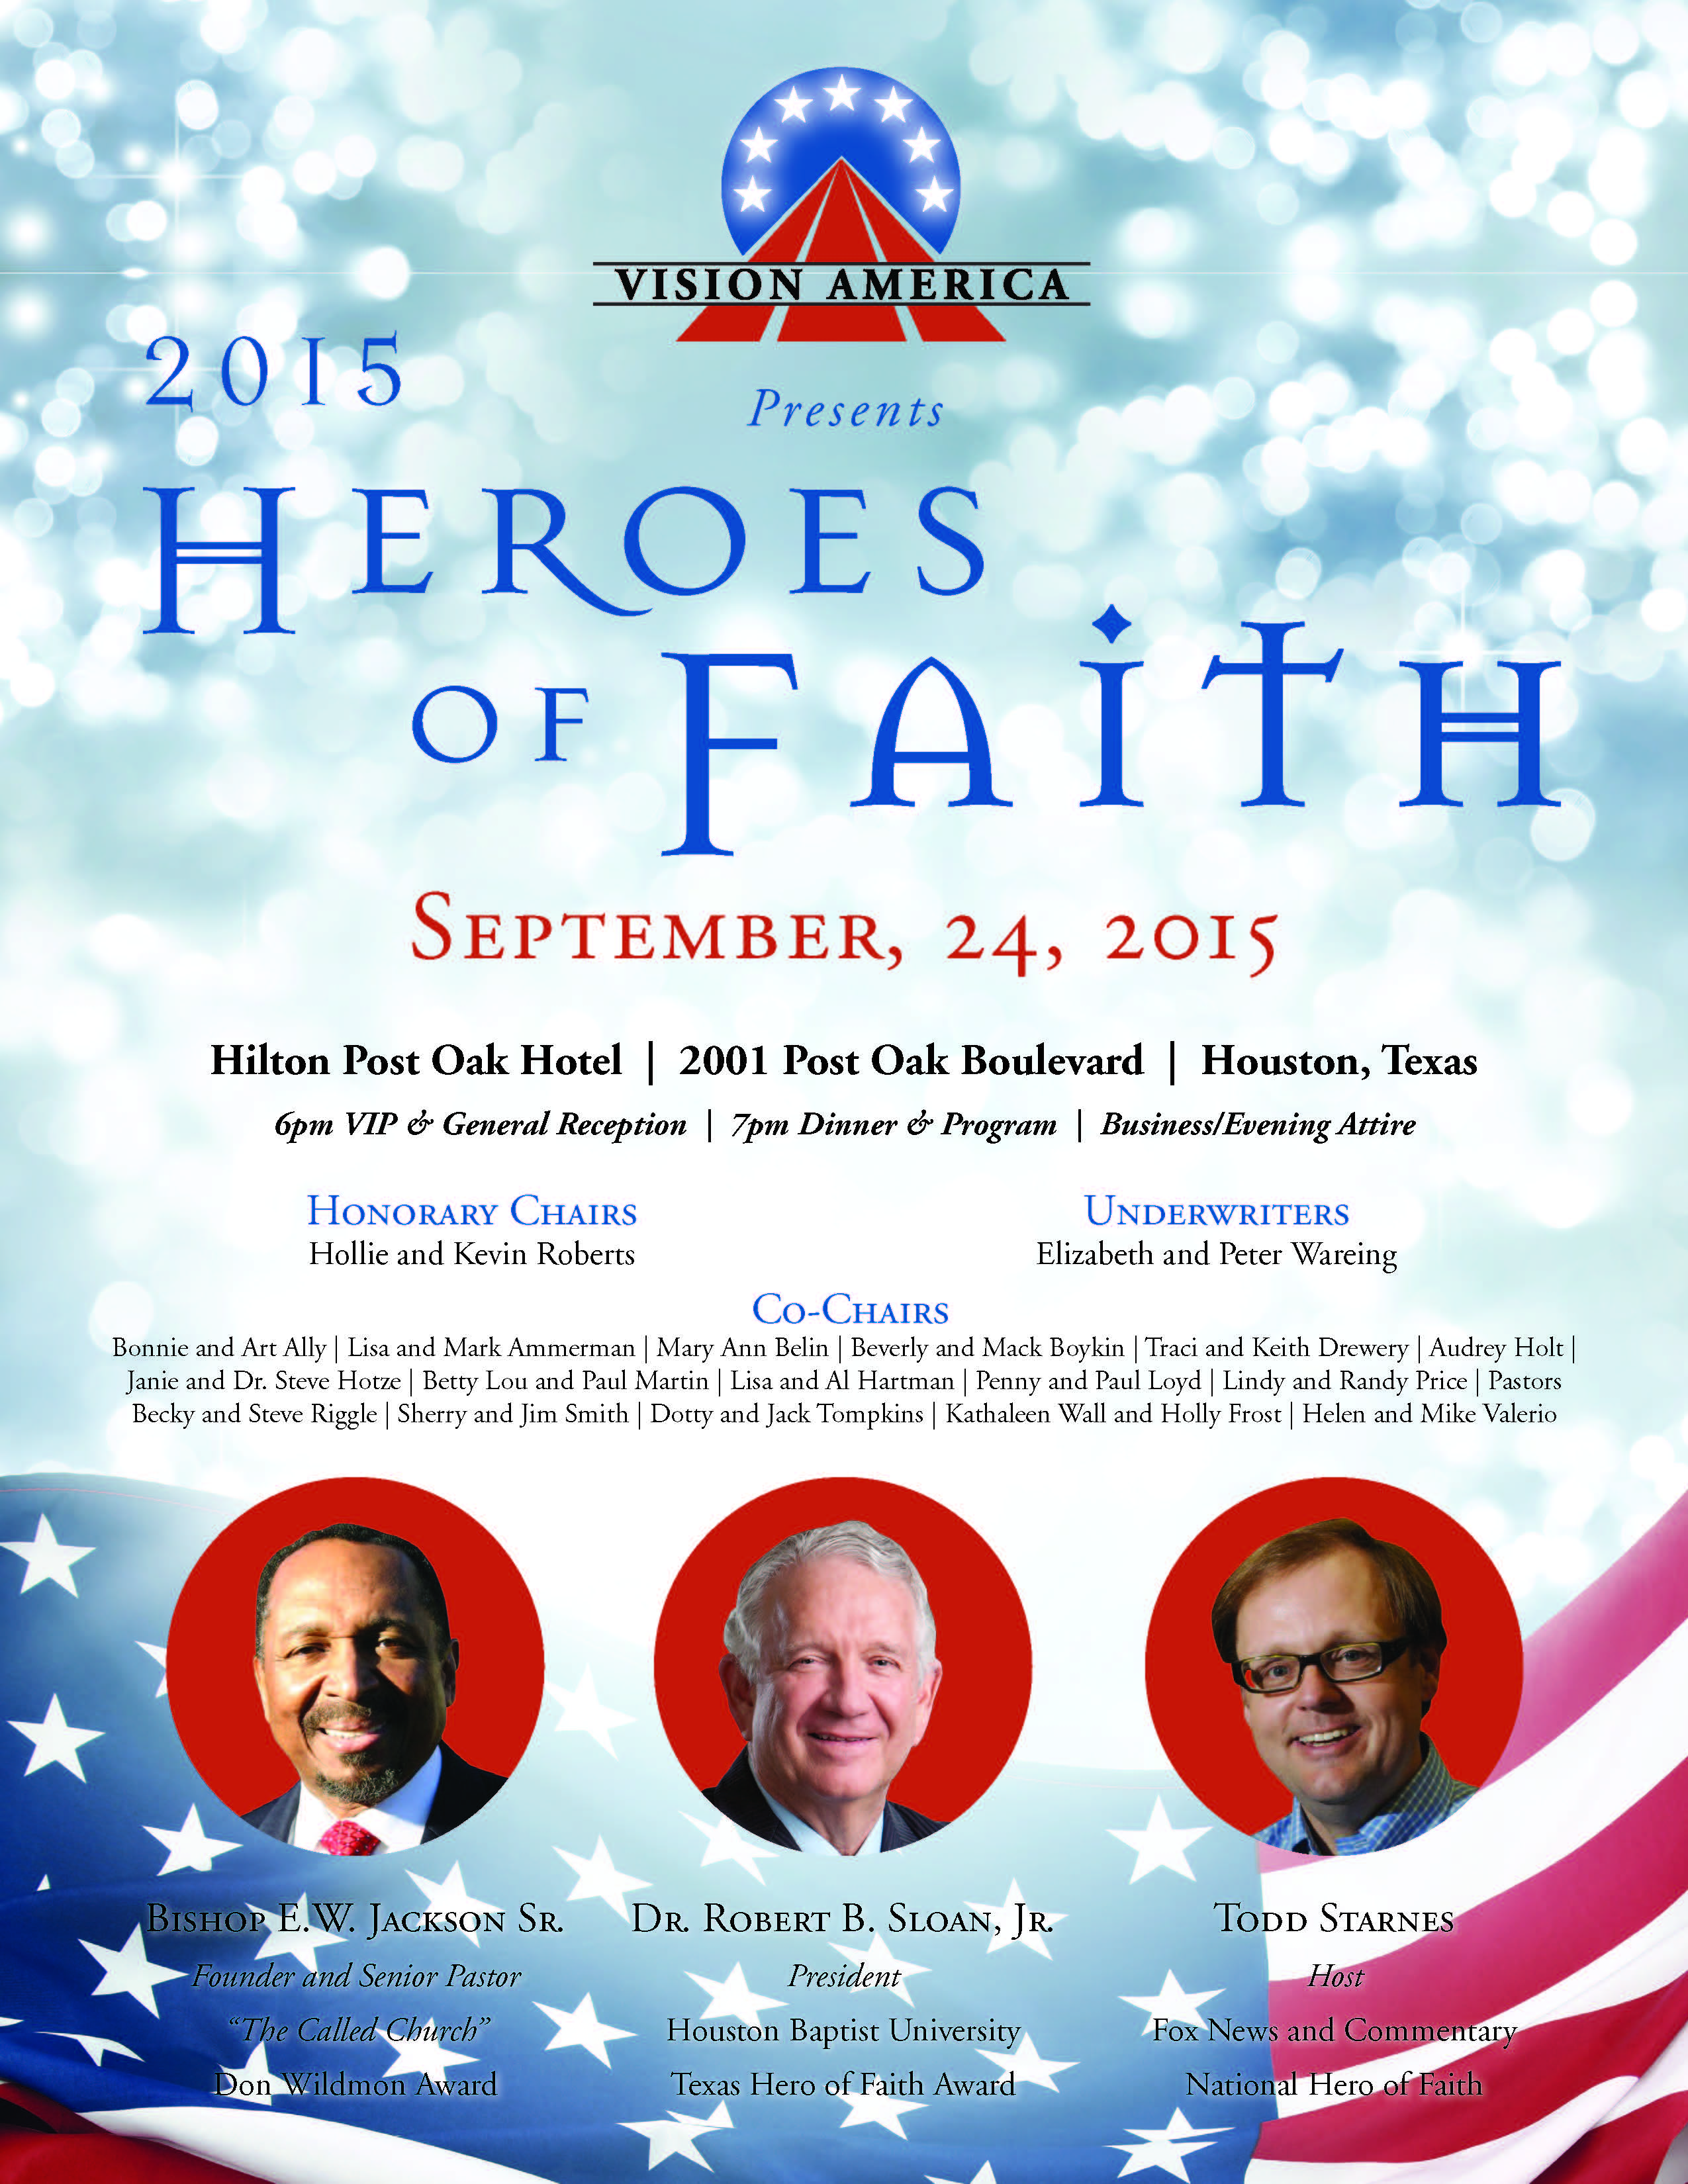 2015 Heroes of Faith, Vision America, September 24, 2015, Hilton Post Oak Hotel, Houston, Texas, Bishop E.W. Jackson, Dr. Robert B. Sloan, Jr., and Todd Starnes with photos against a red background